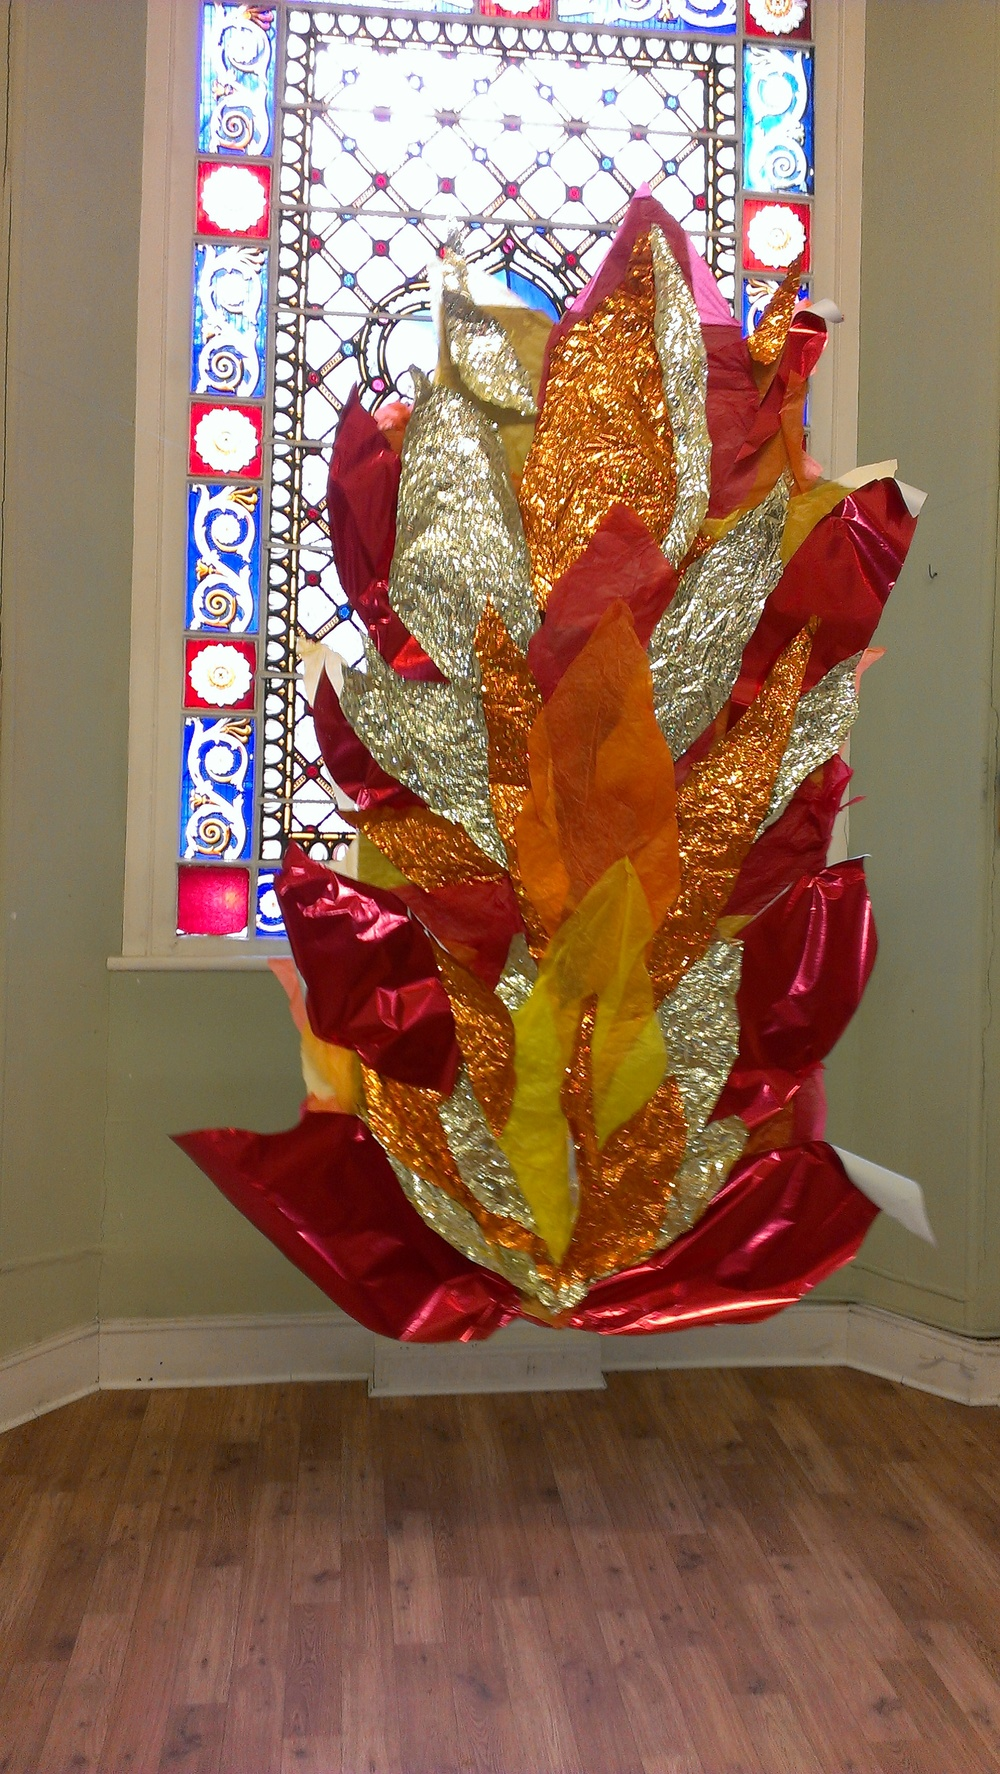 A Pentecost display